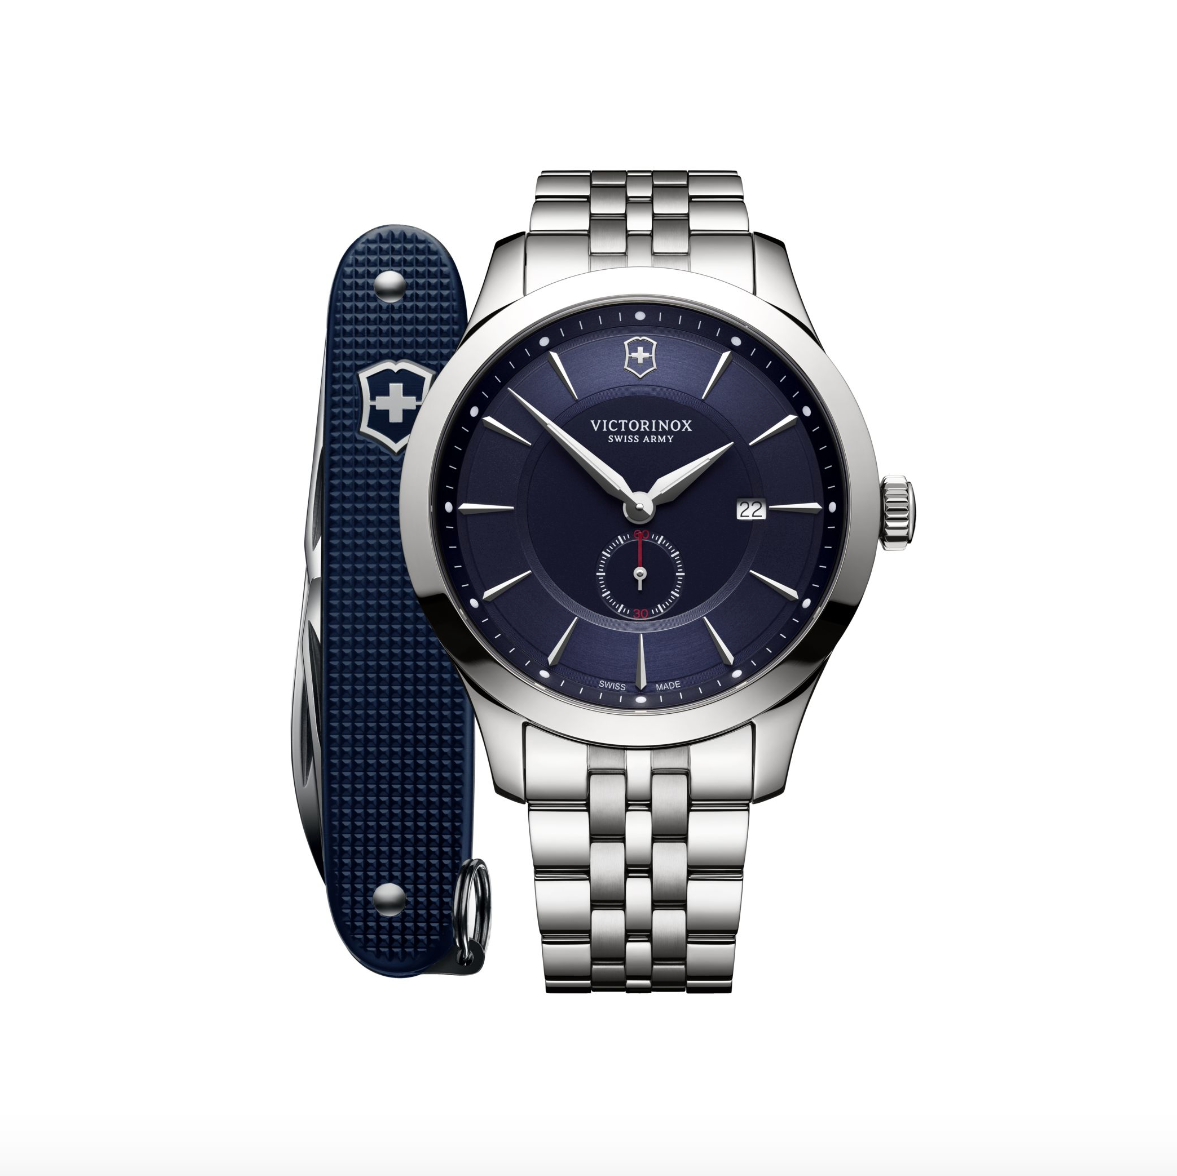 Victorinox Swiss Army Blue Alliance with Pioneer Swiss Army Knife - Talisman Collection Fine Jewelers